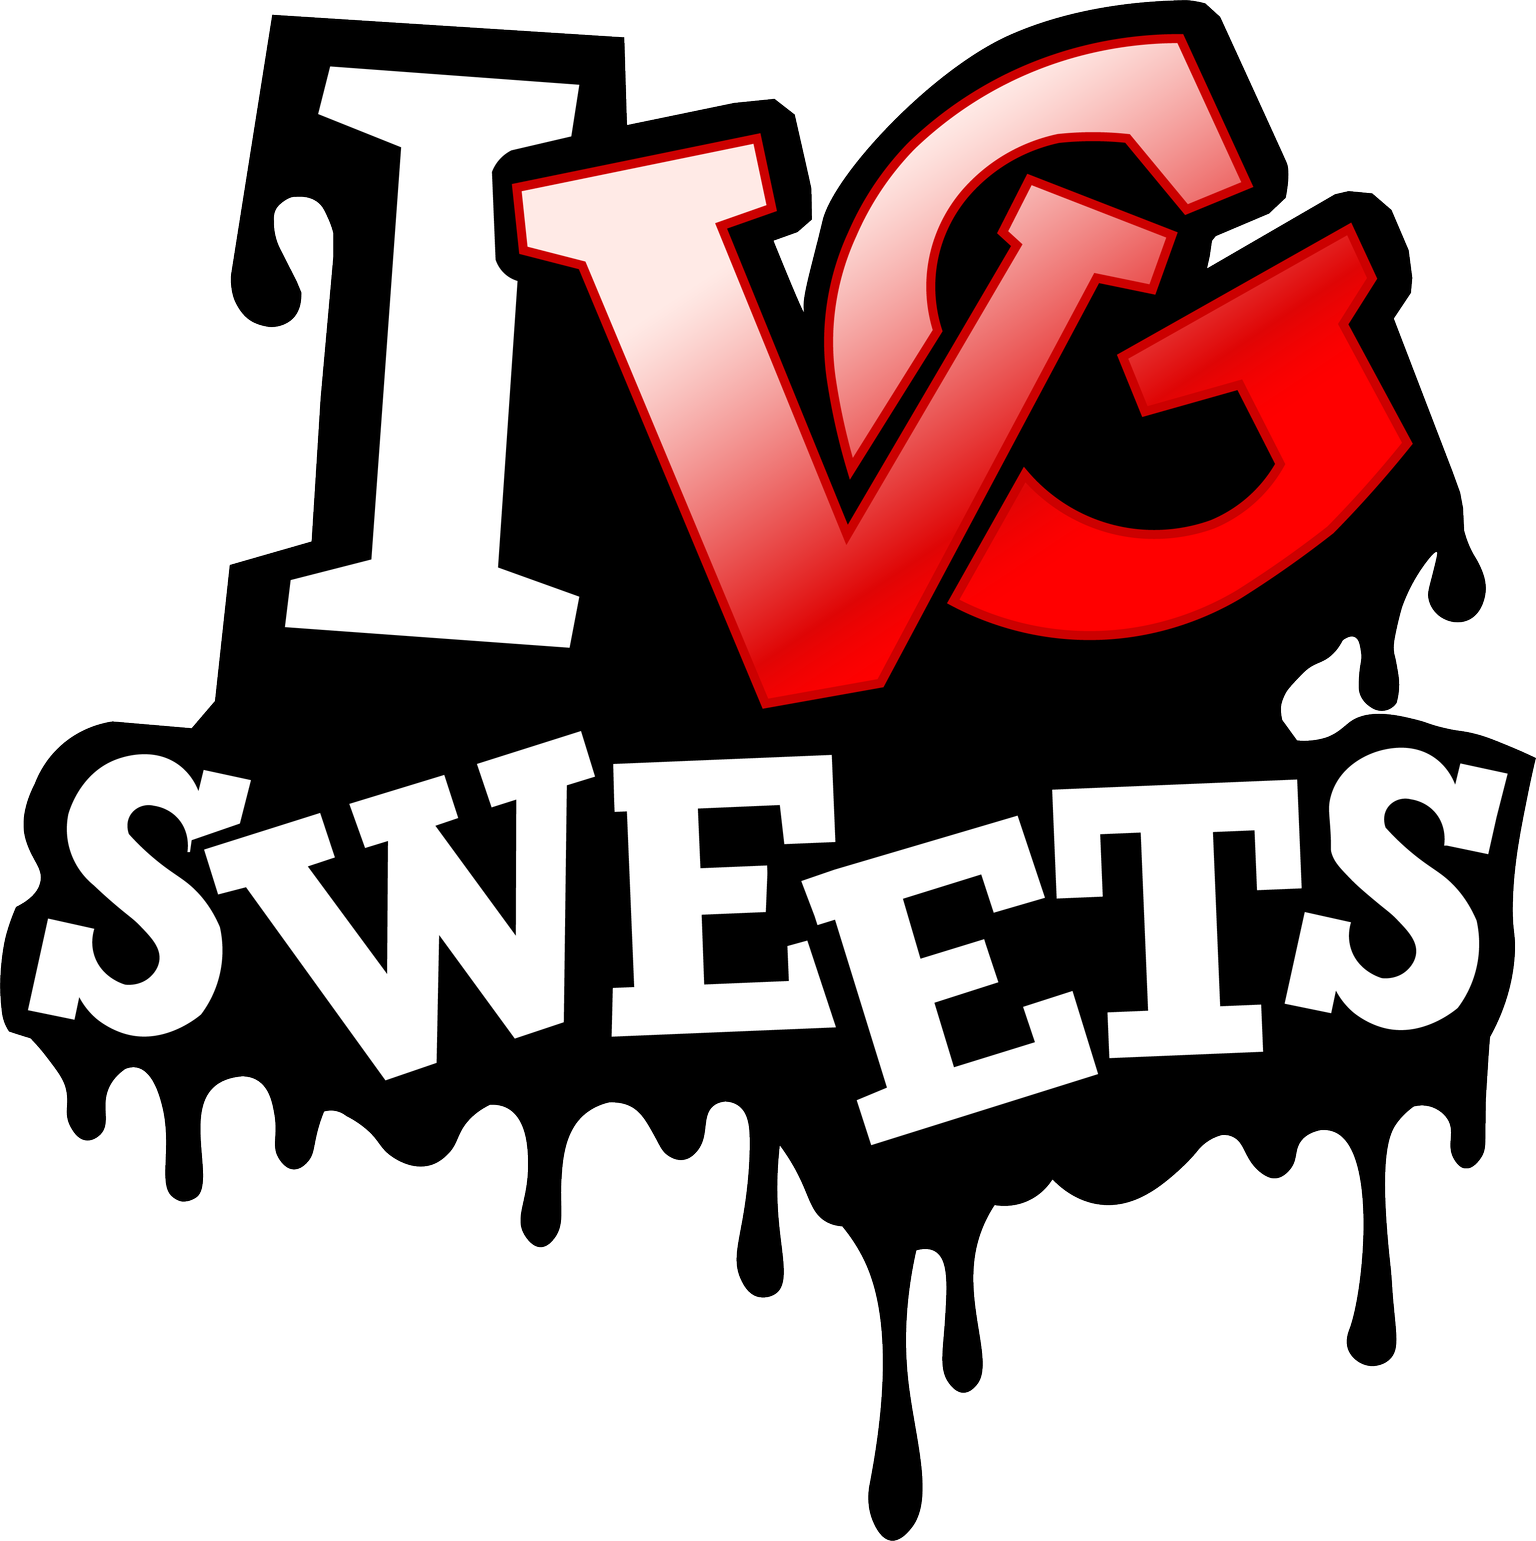 I-VG-Sweets-E-Liquid-Flawless-Vape-India